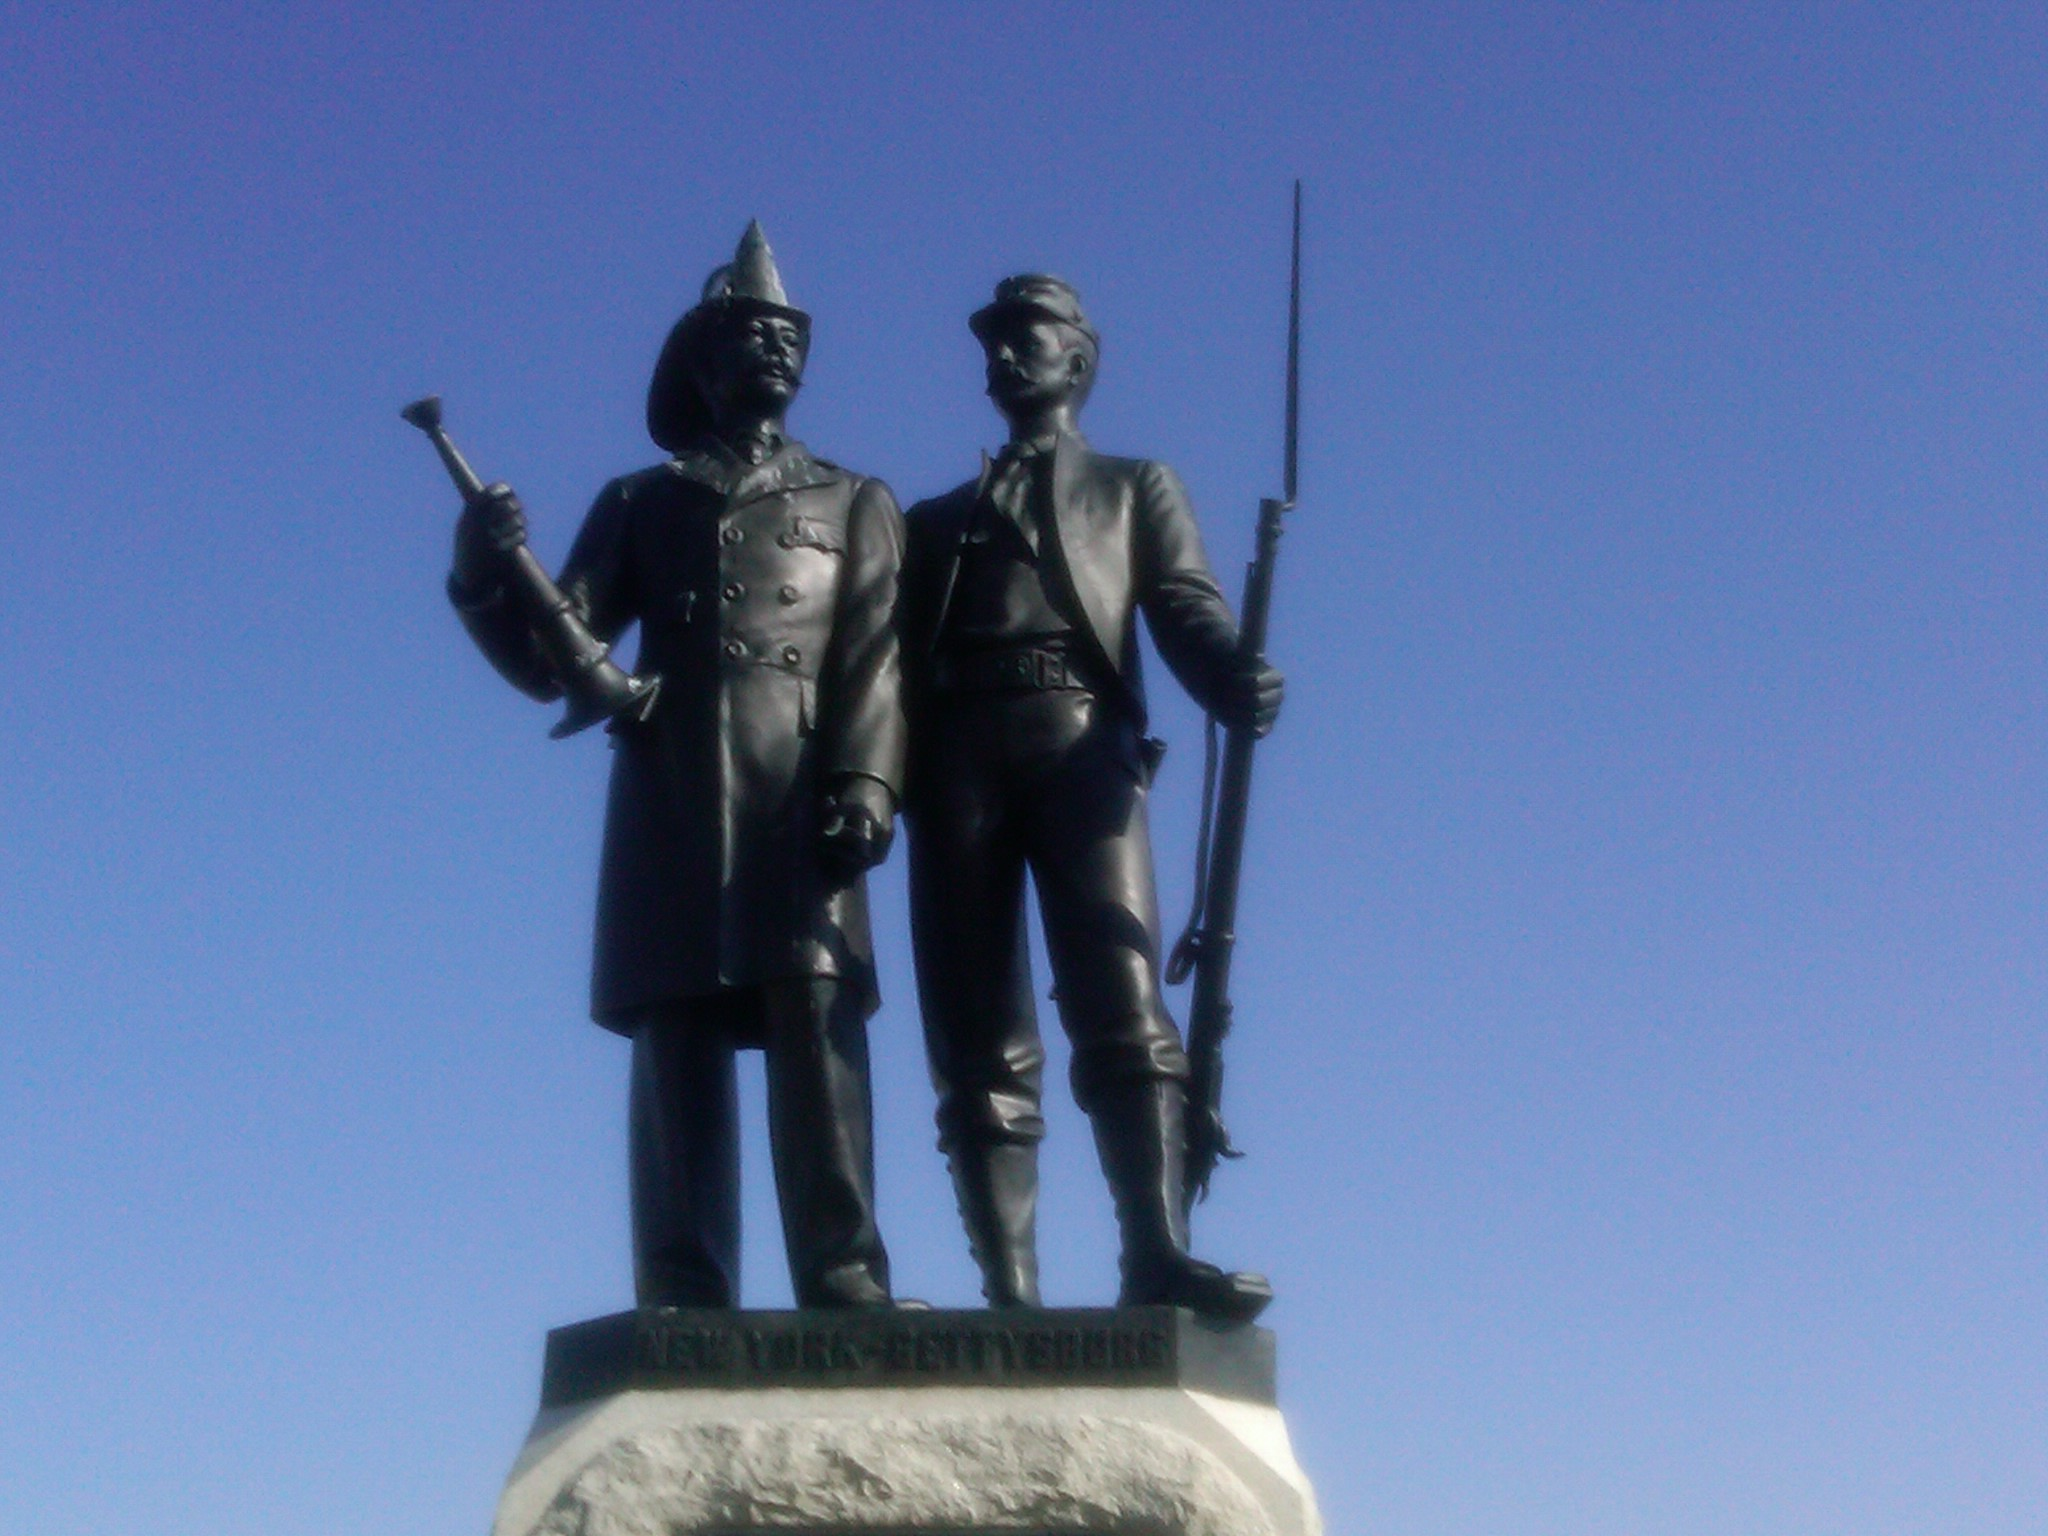 statue of a fireman and a soldier erected by the NYC volunteer firemen in tribute to those brothers who fought in the battle and gave their life.